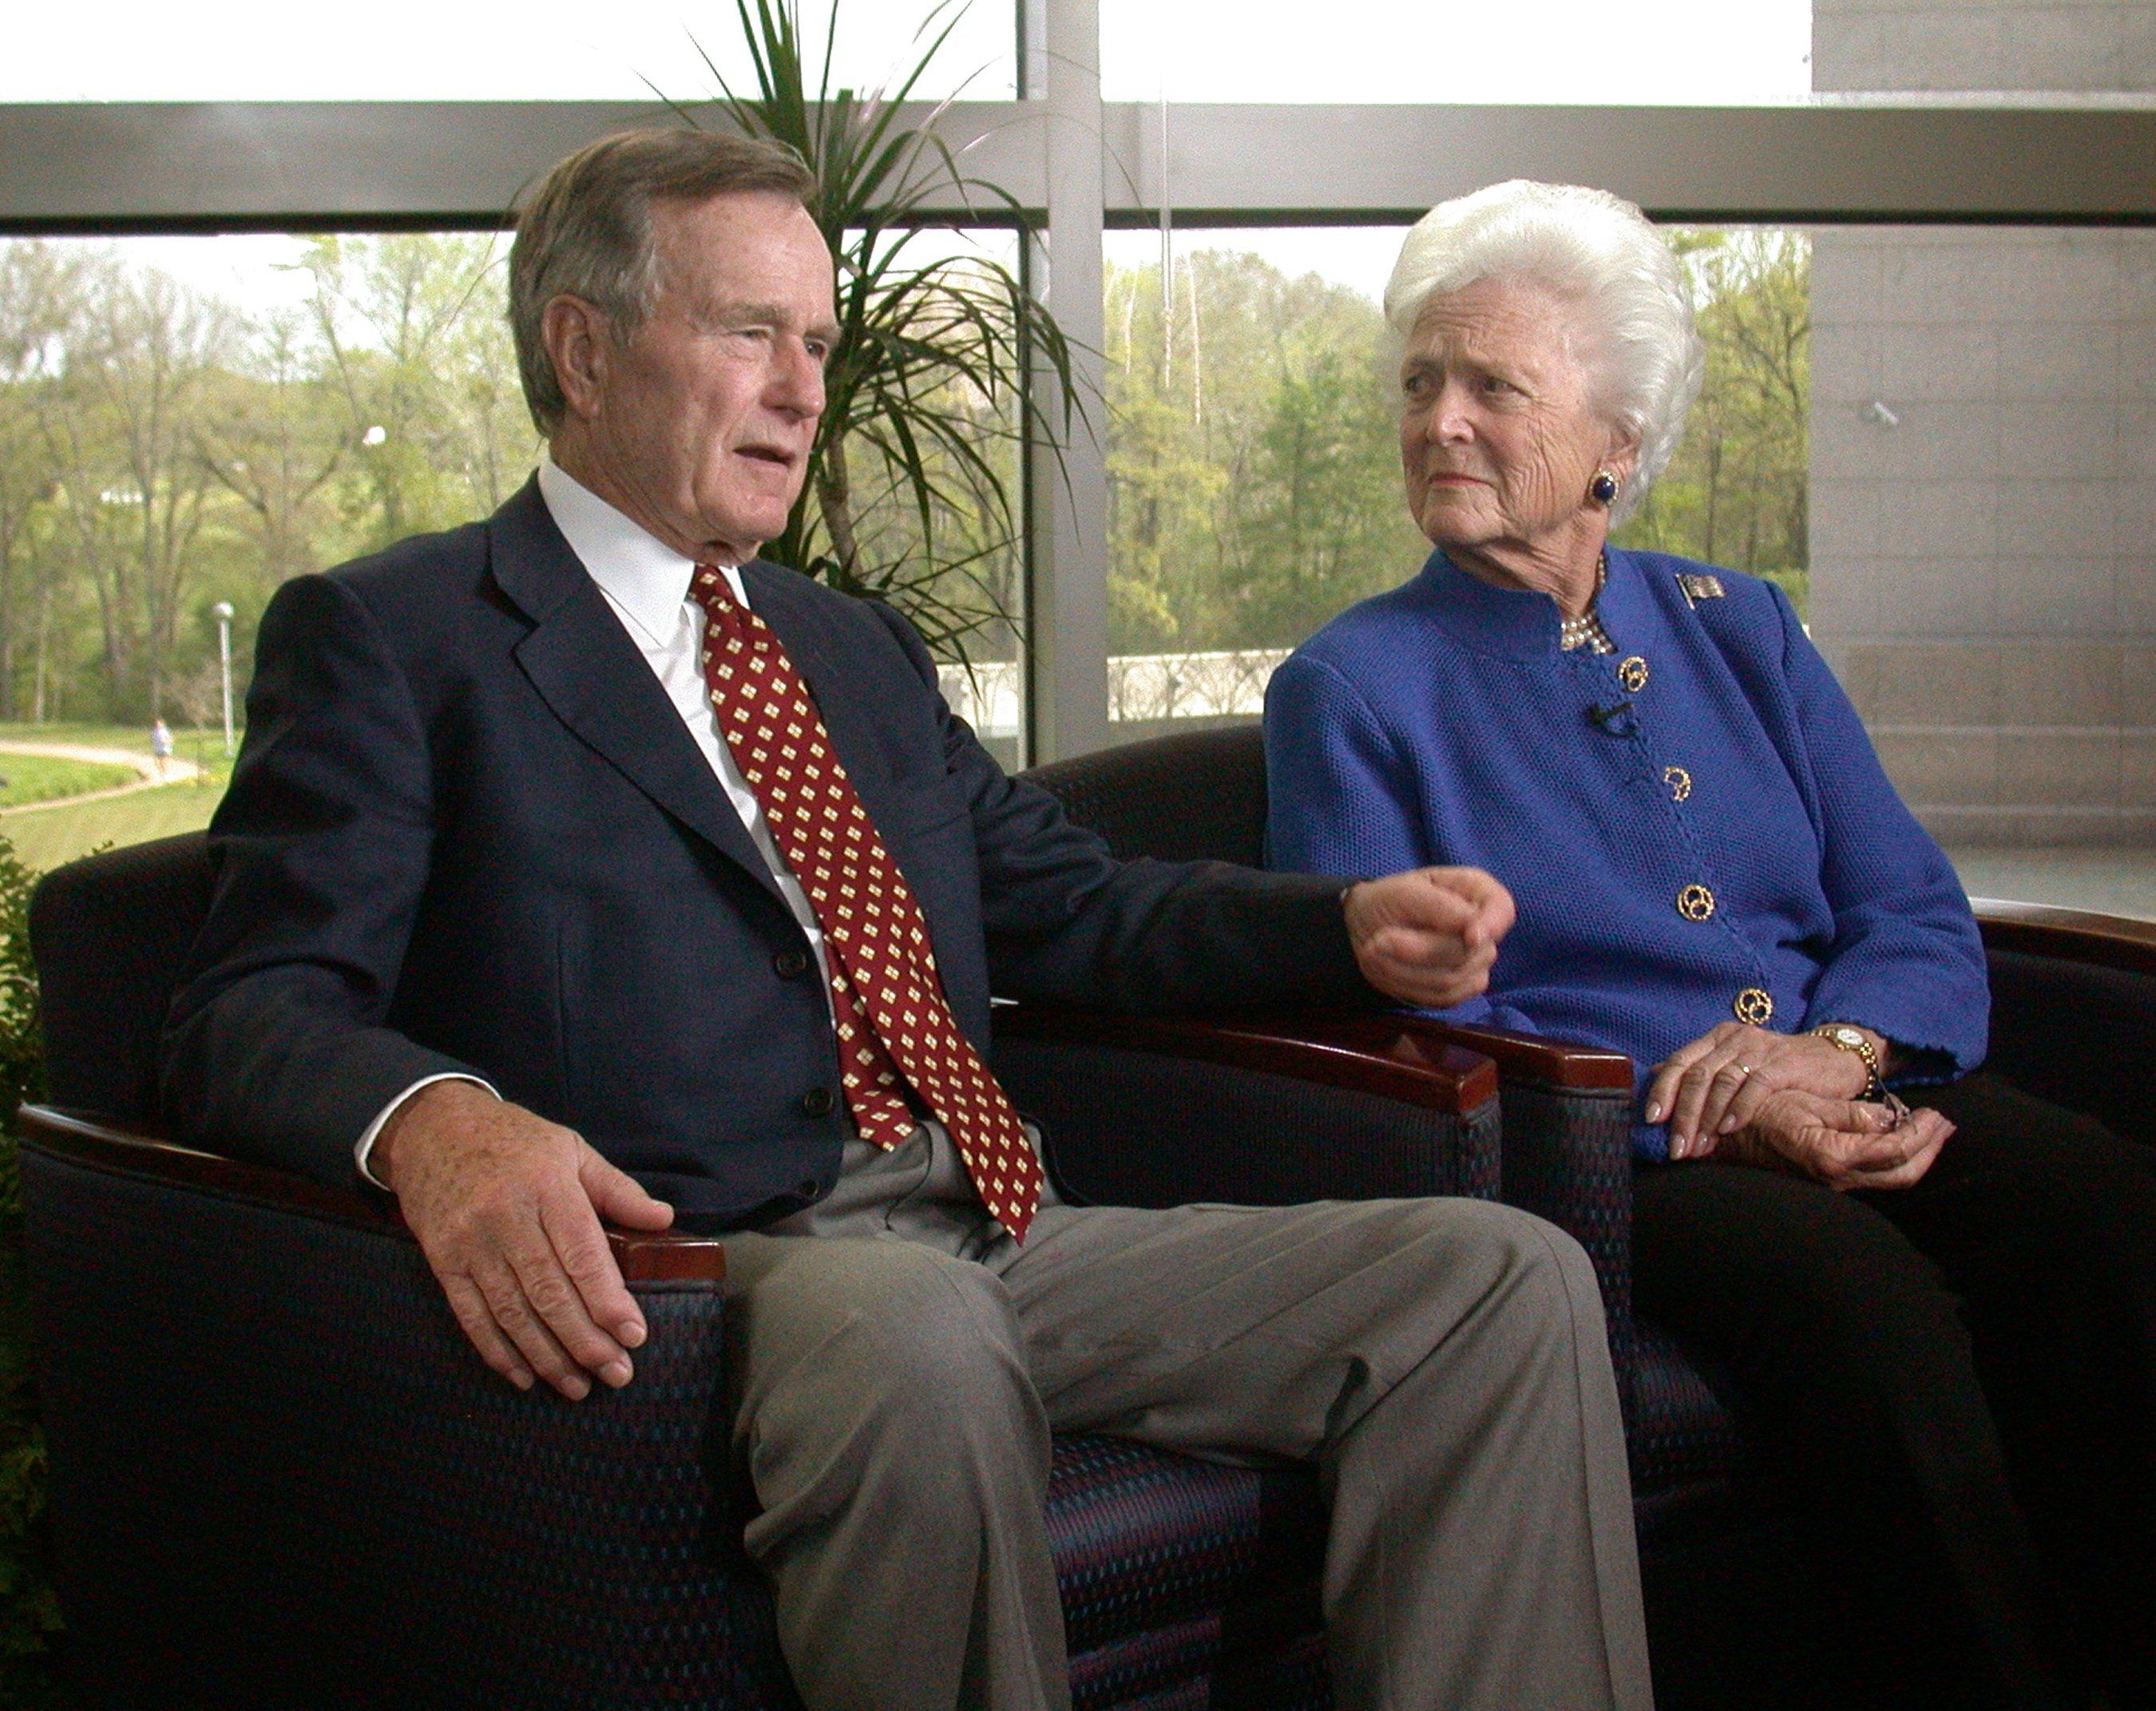 College Station, TX - 2003: (L-R) Former President George HW Bush, Barbara Bush interview for Good Morning America at the George HW Bush Presidential Library, on the campus of Texas A&M. (Photo by Ida Mae Astute /ABC via Getty Images)